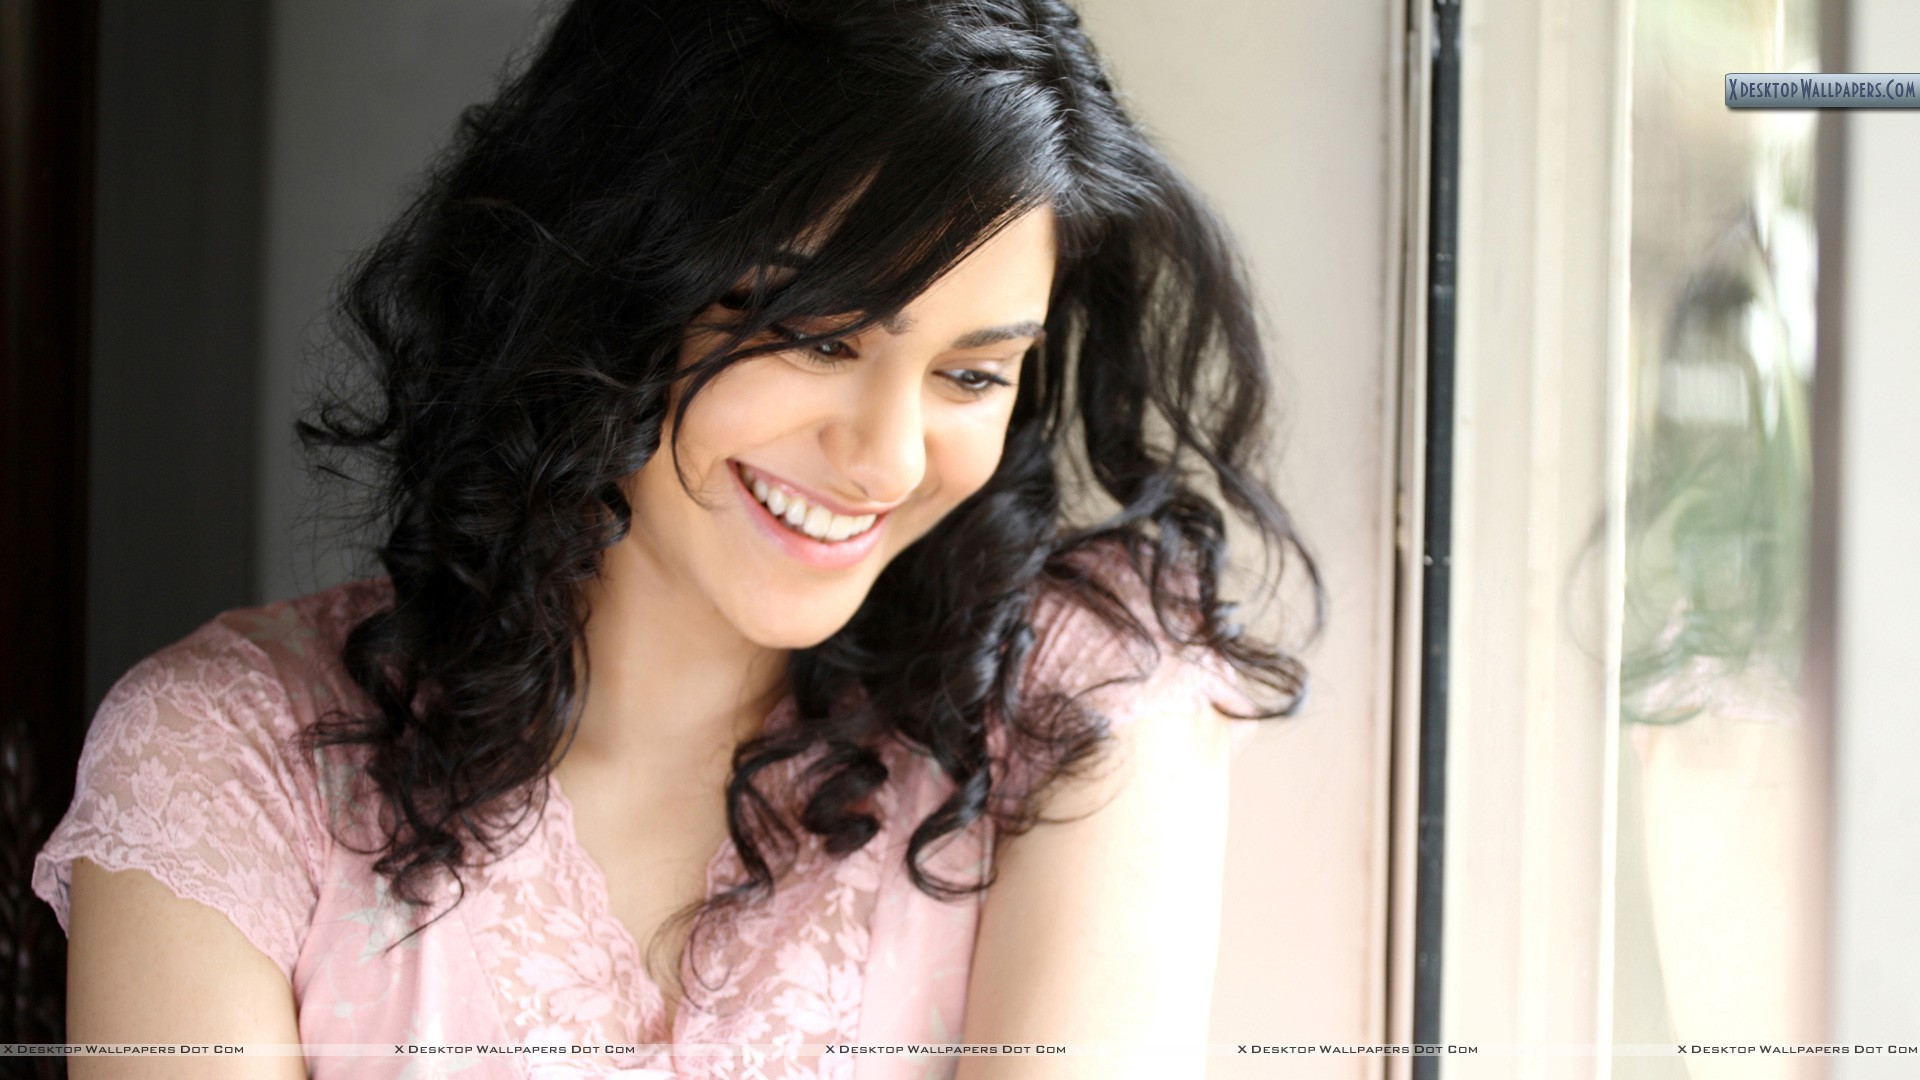 adah sharma wallpapers, photos & images in hd